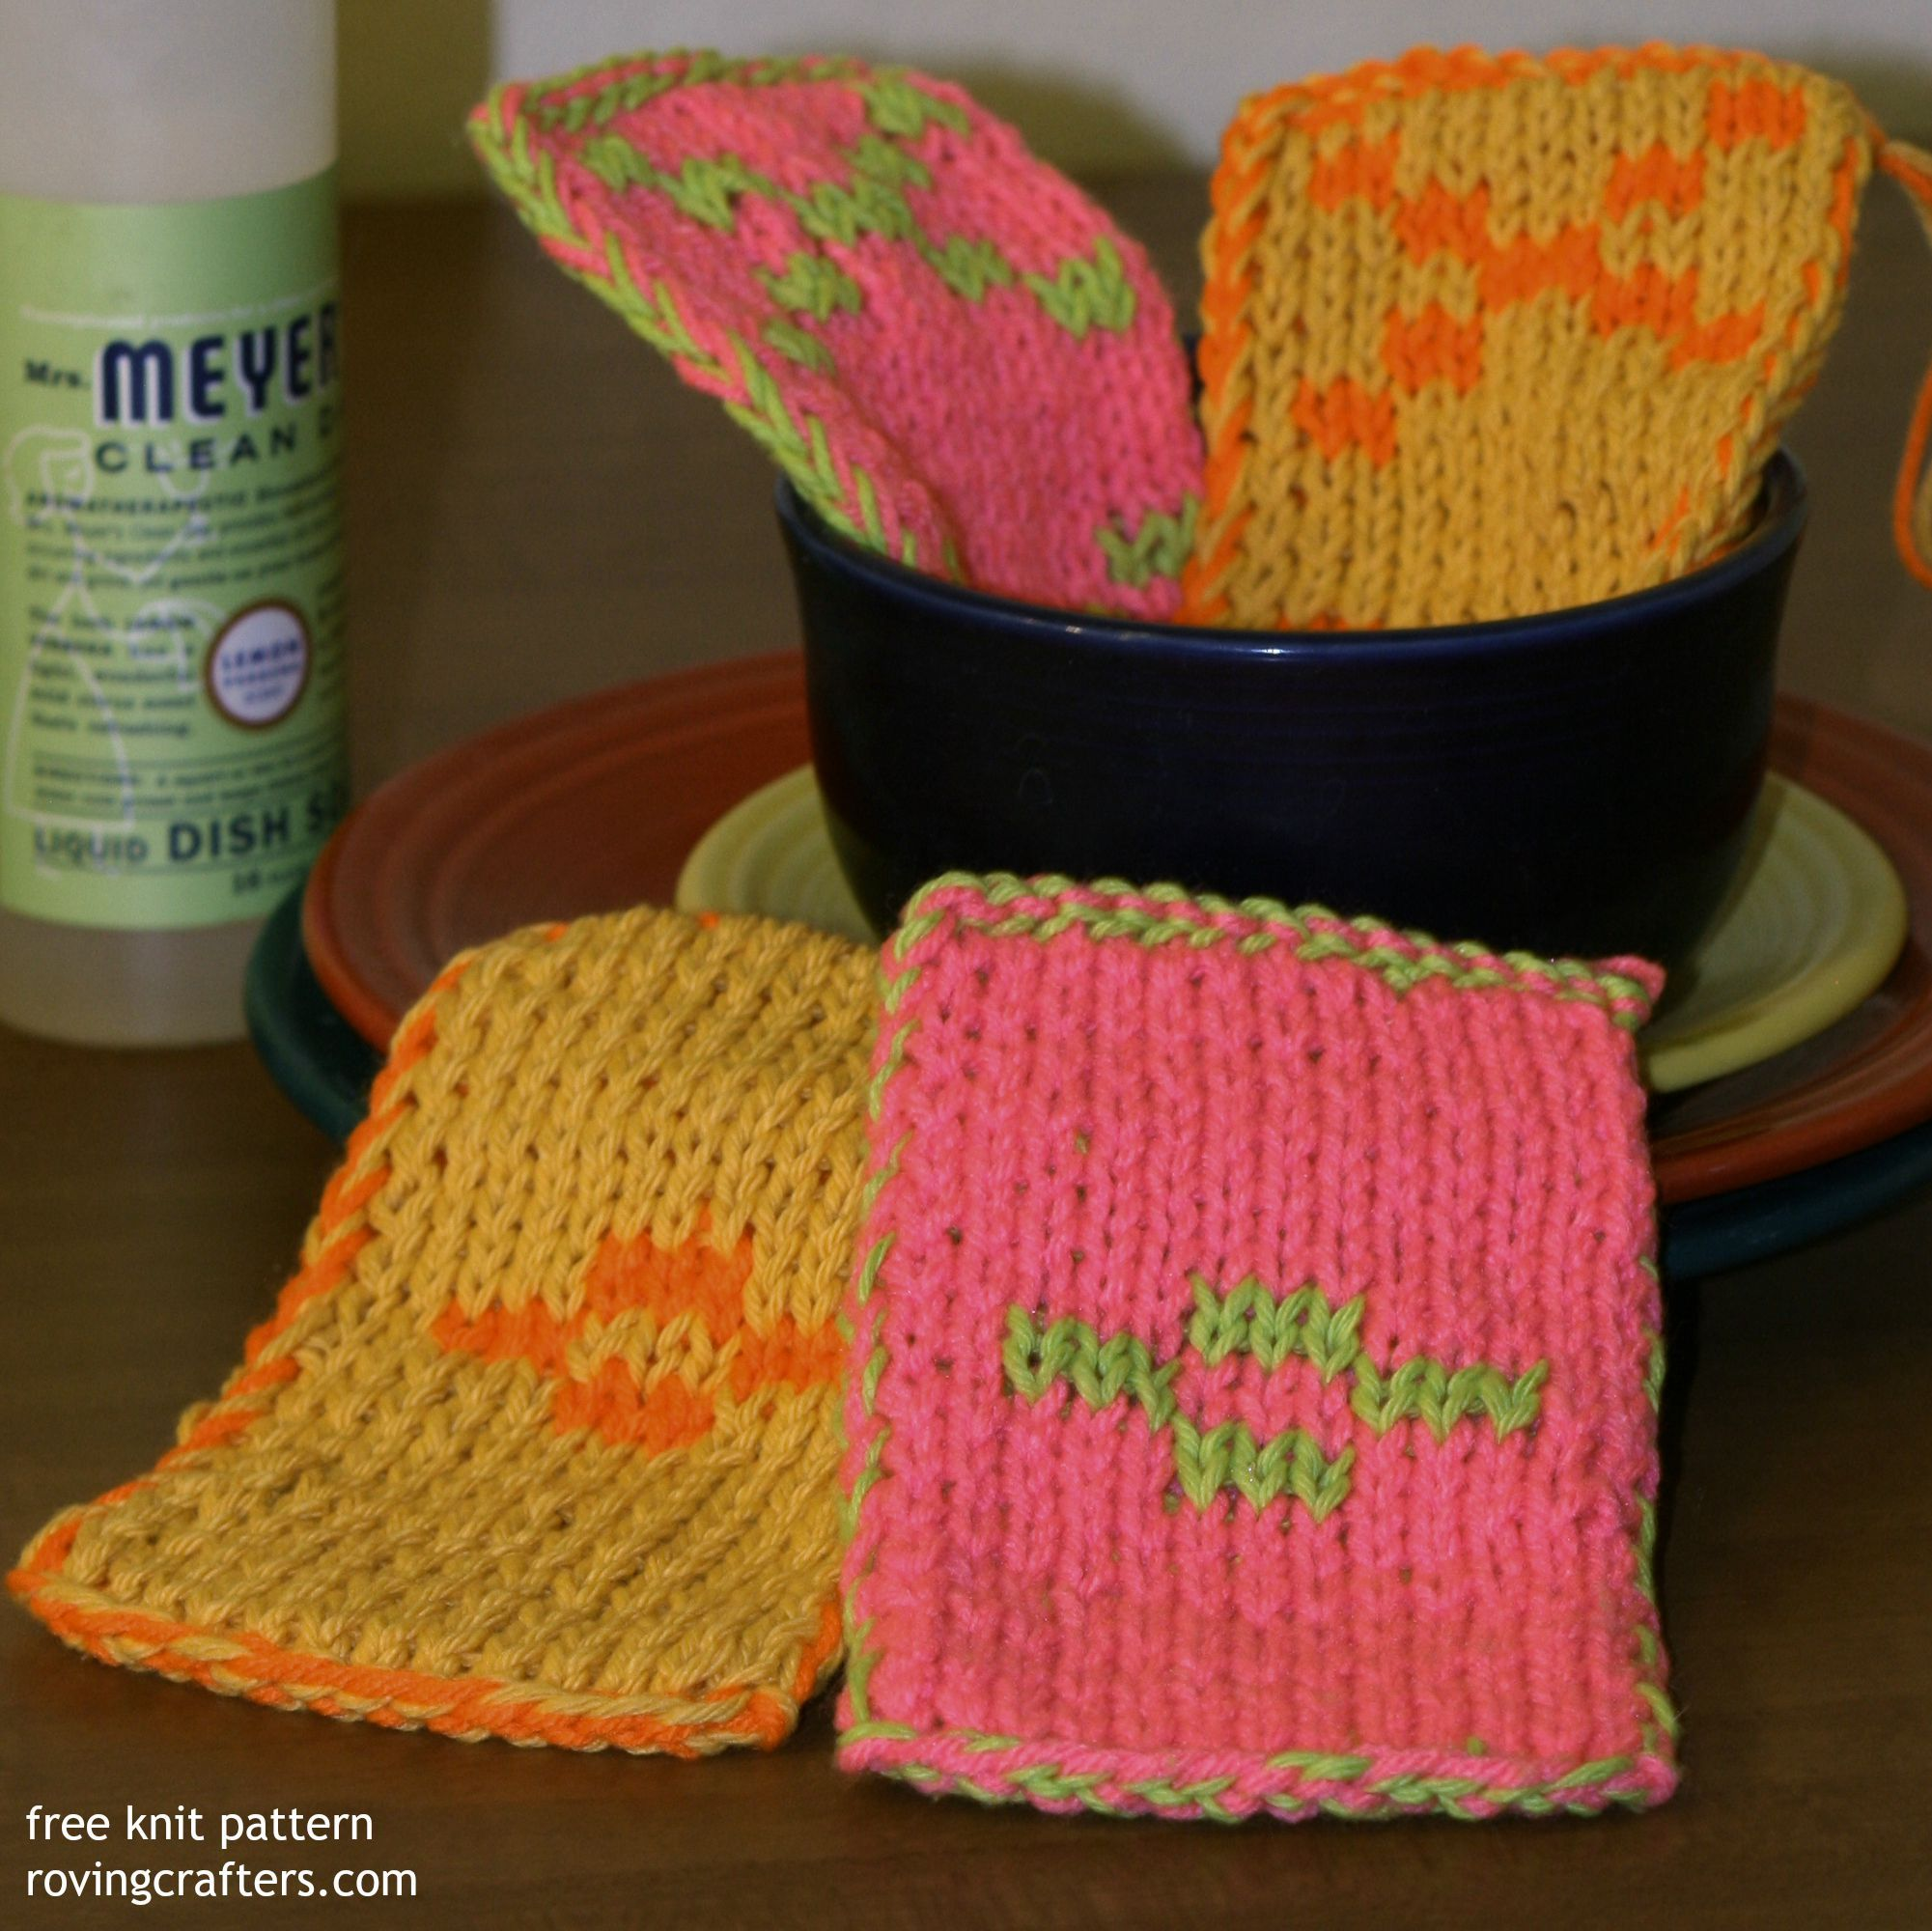 free knit pattern - Toil and Trouble - double sided knitting ...